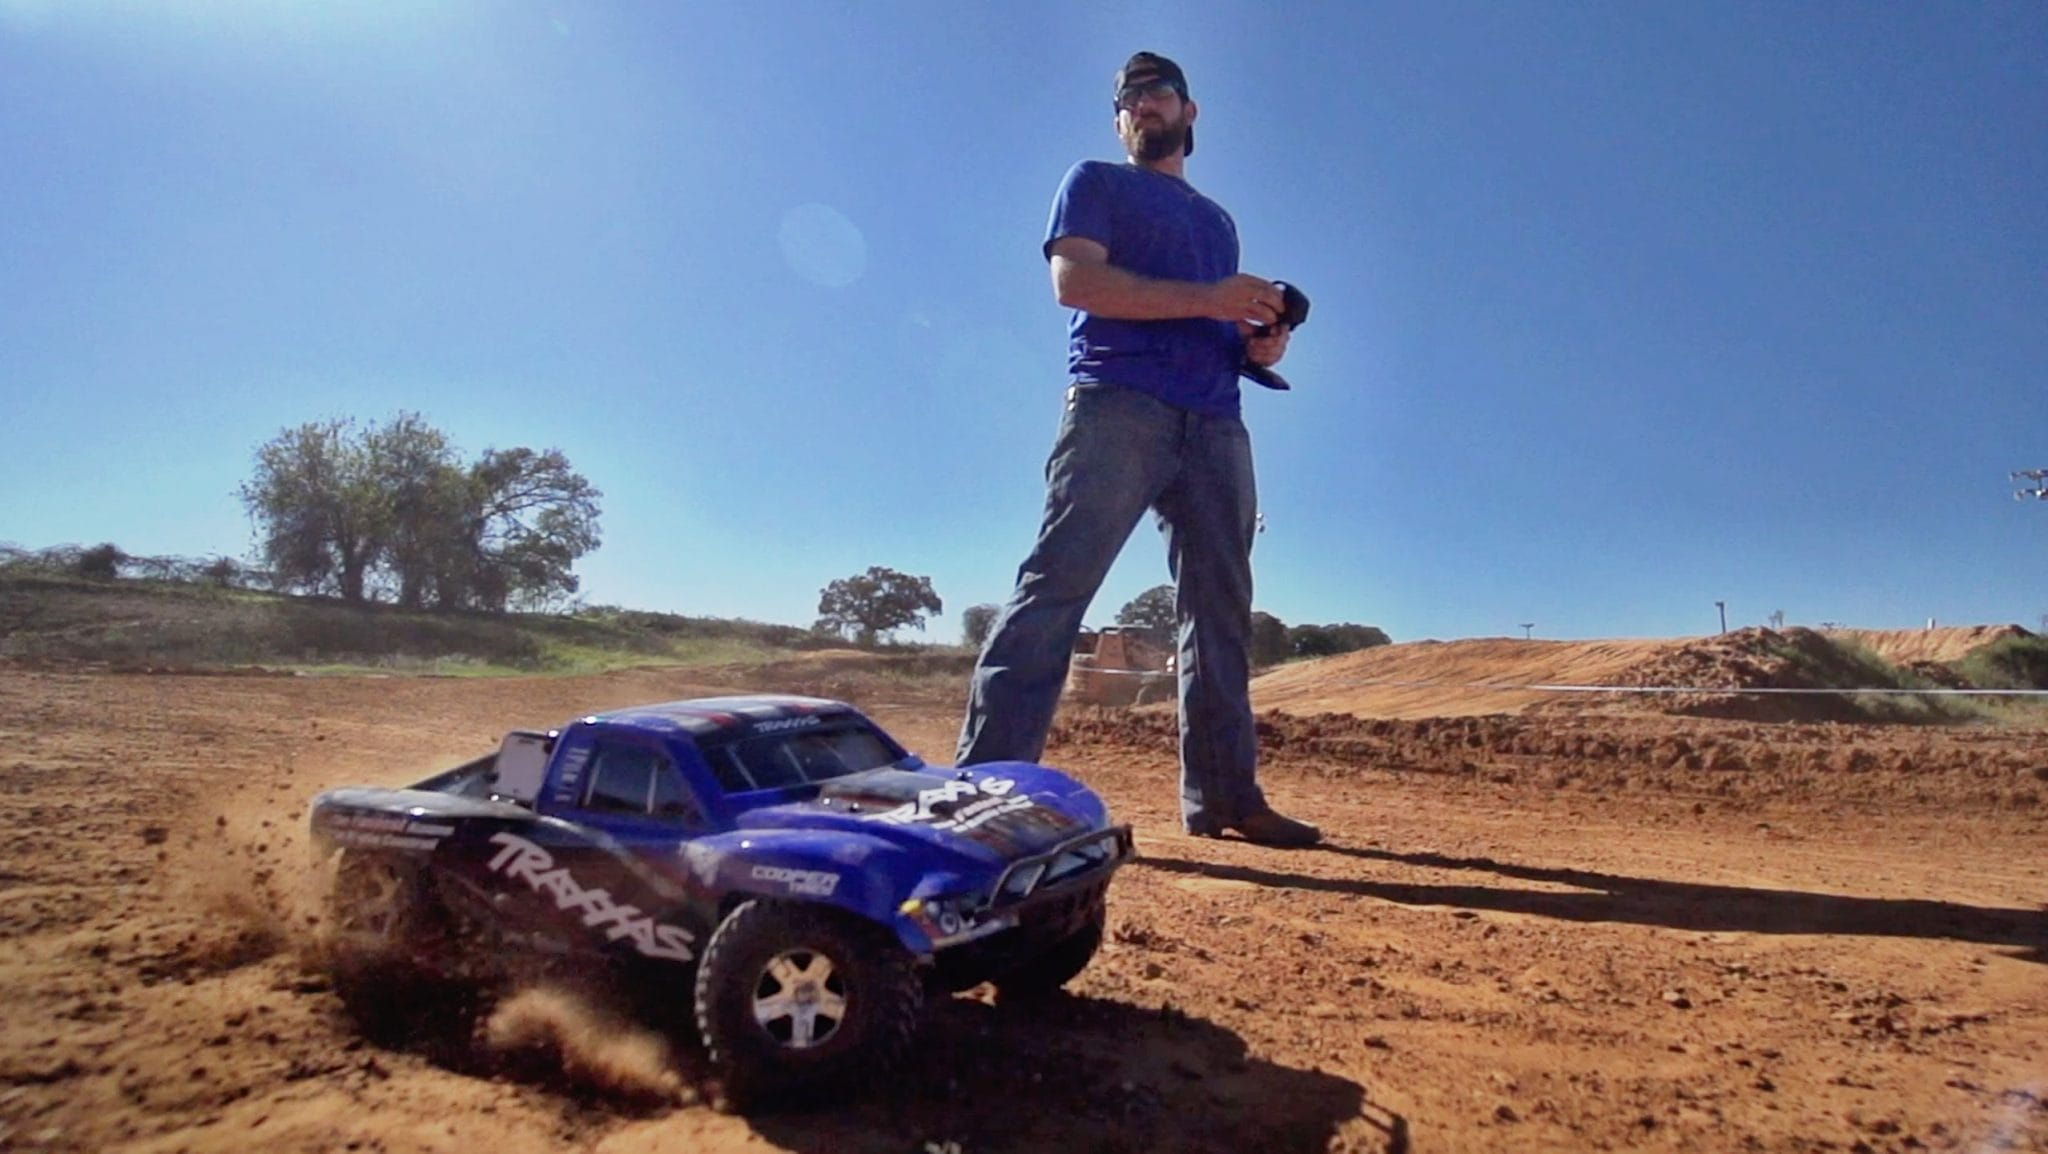 How Awesome is R/C? Let Dude Perfect Show You the Ways… [Video]